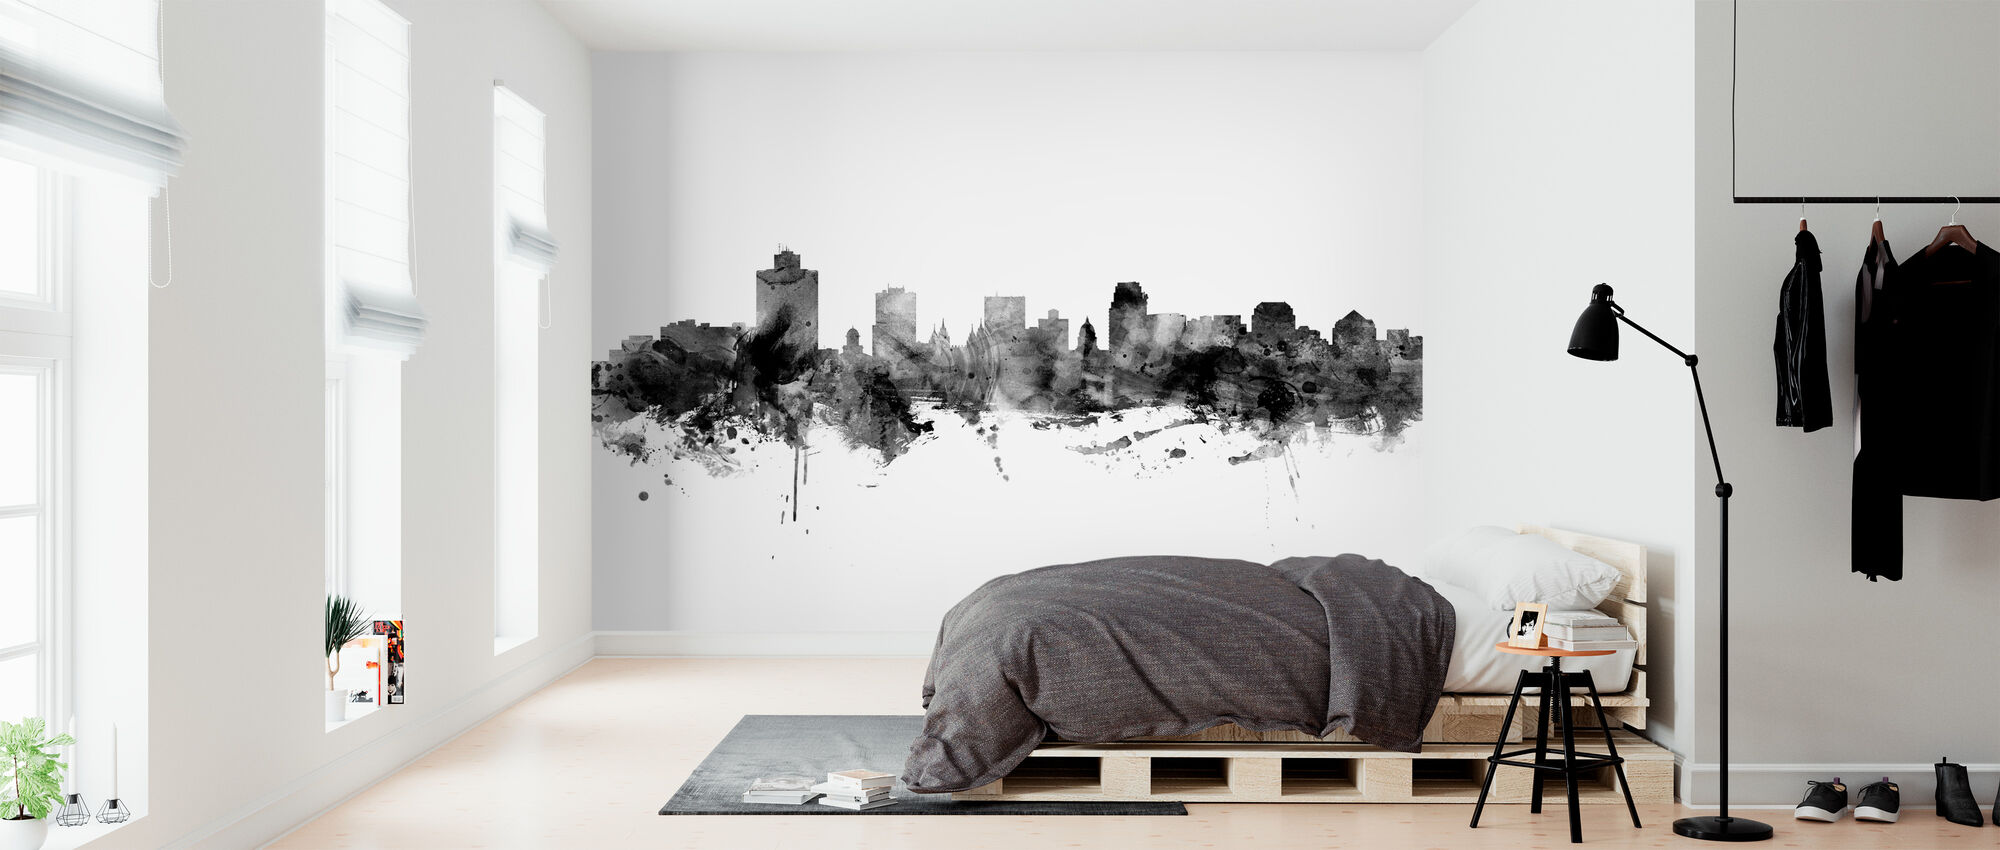 Salt Lake City Skyline, black and white - Wallpaper - Bedroom